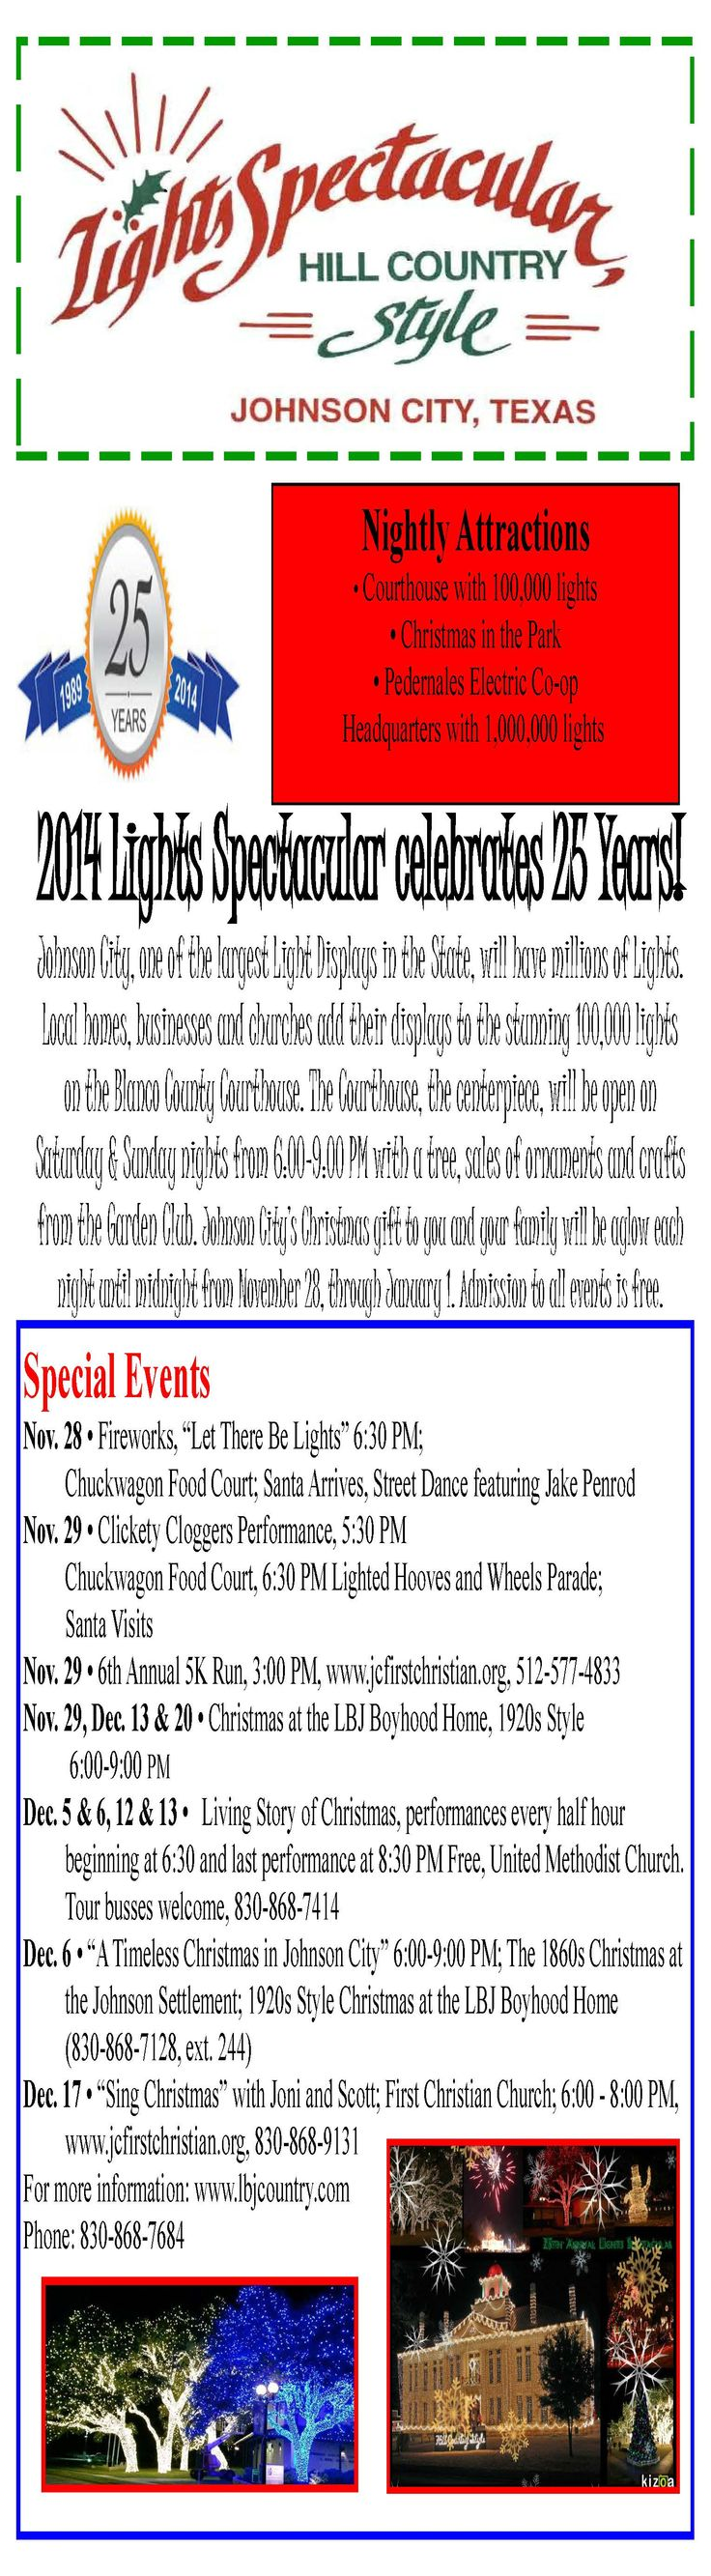 25th Annual Lights Spectacular schedule of events!